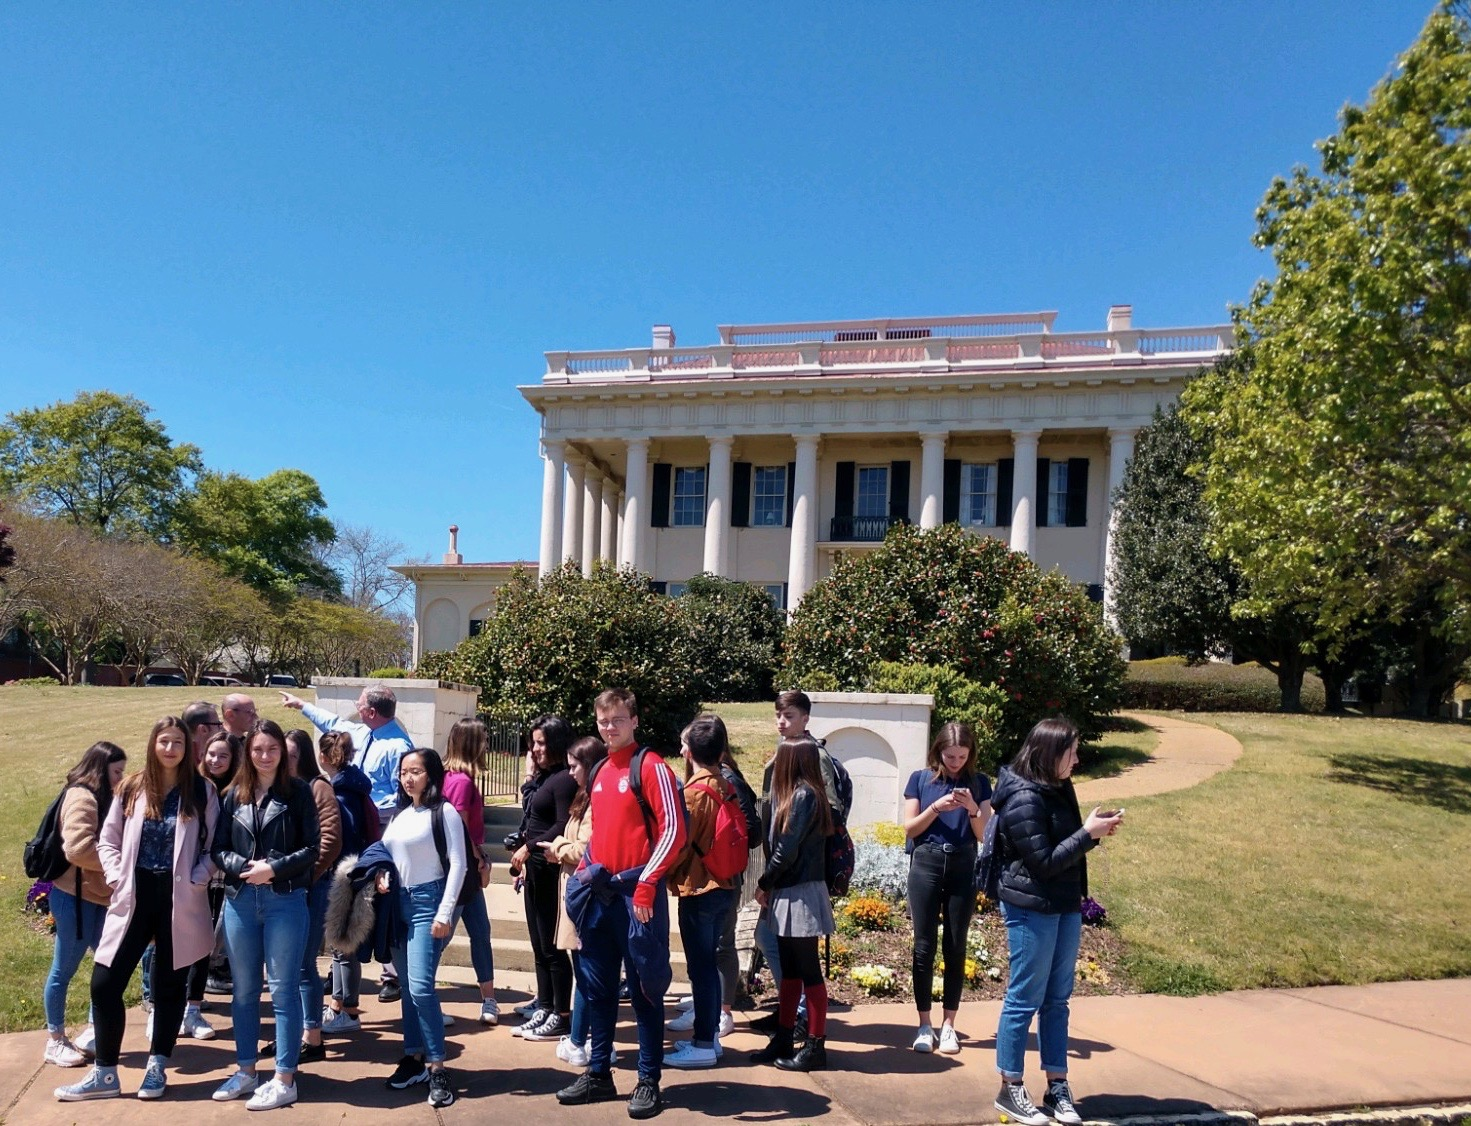 French Exchange students got a tour of downtown Macon earlier this week from Mr. Ed Grisamore and Dr. Bob Veto